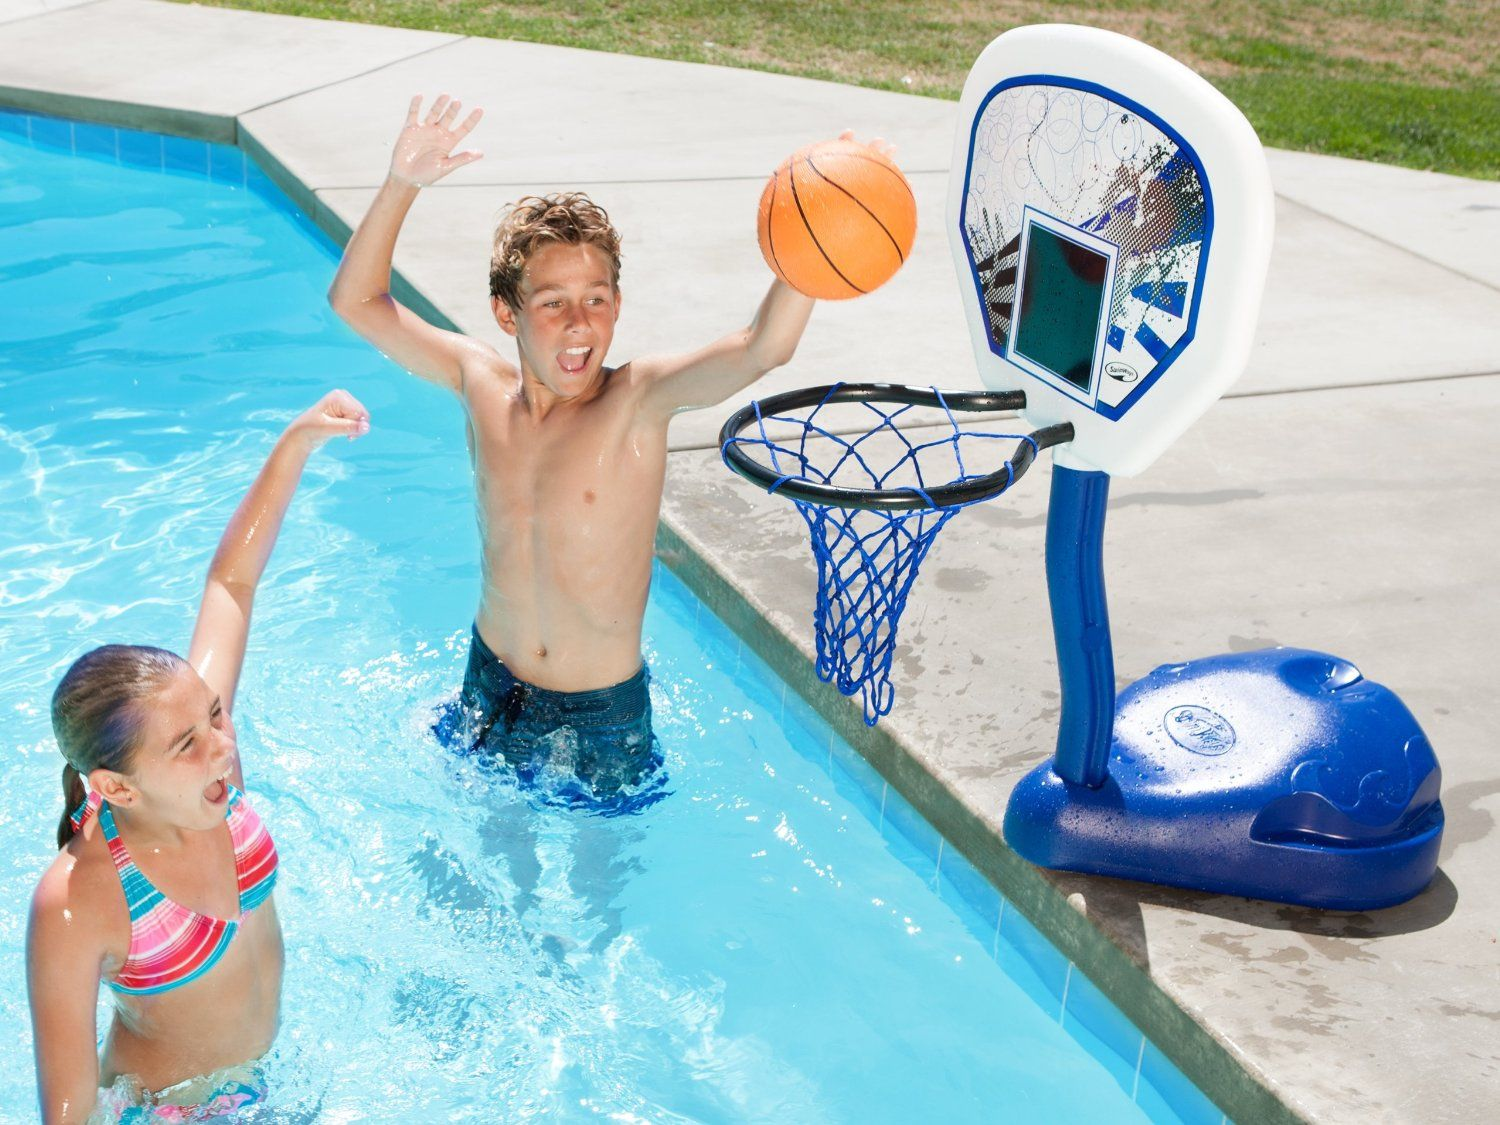 Robot Check Swimming Pool Games Pool Basketball Pool Games